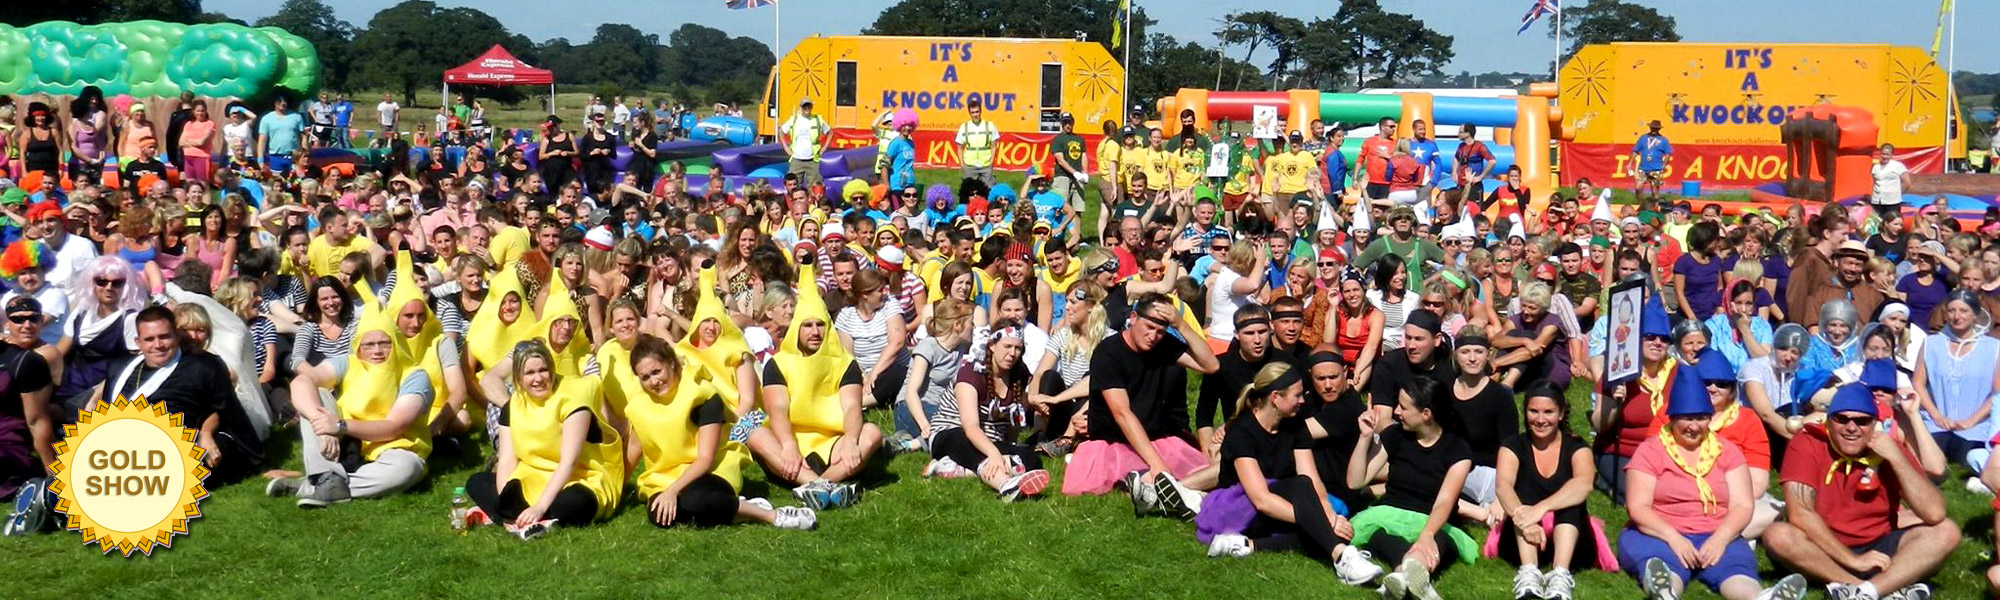 The teams on a charity fund raising It's A knockout